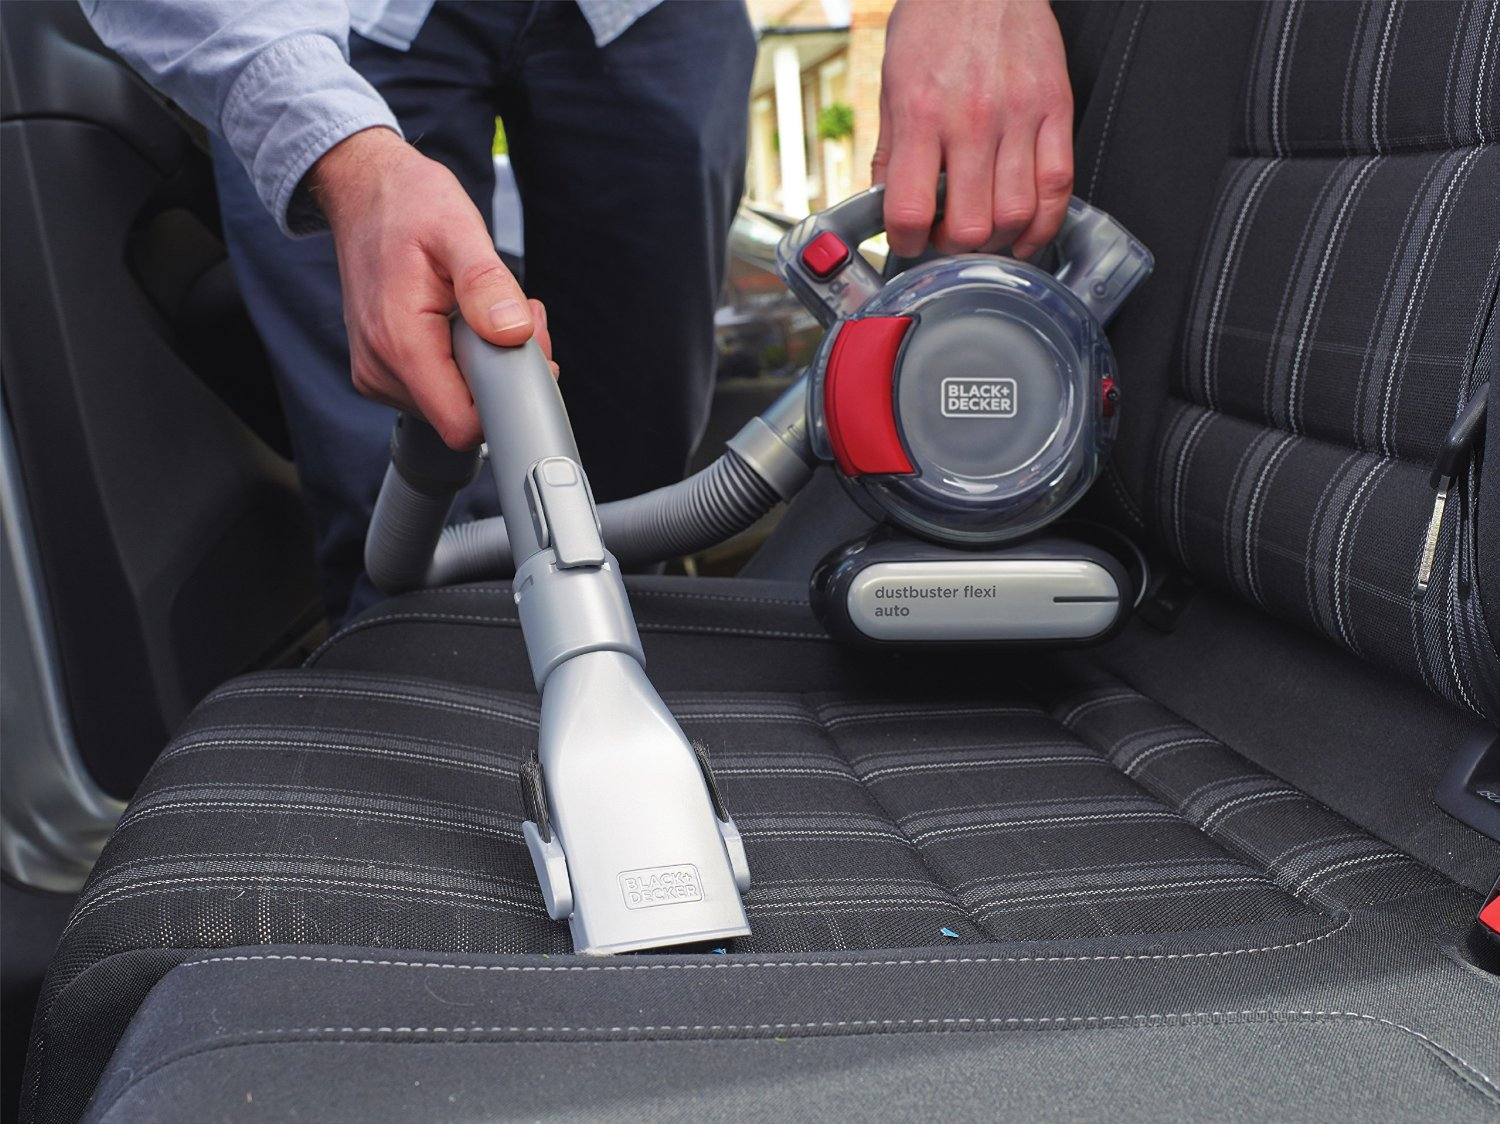 black + decker pd1200 car vacuum hoover attachment